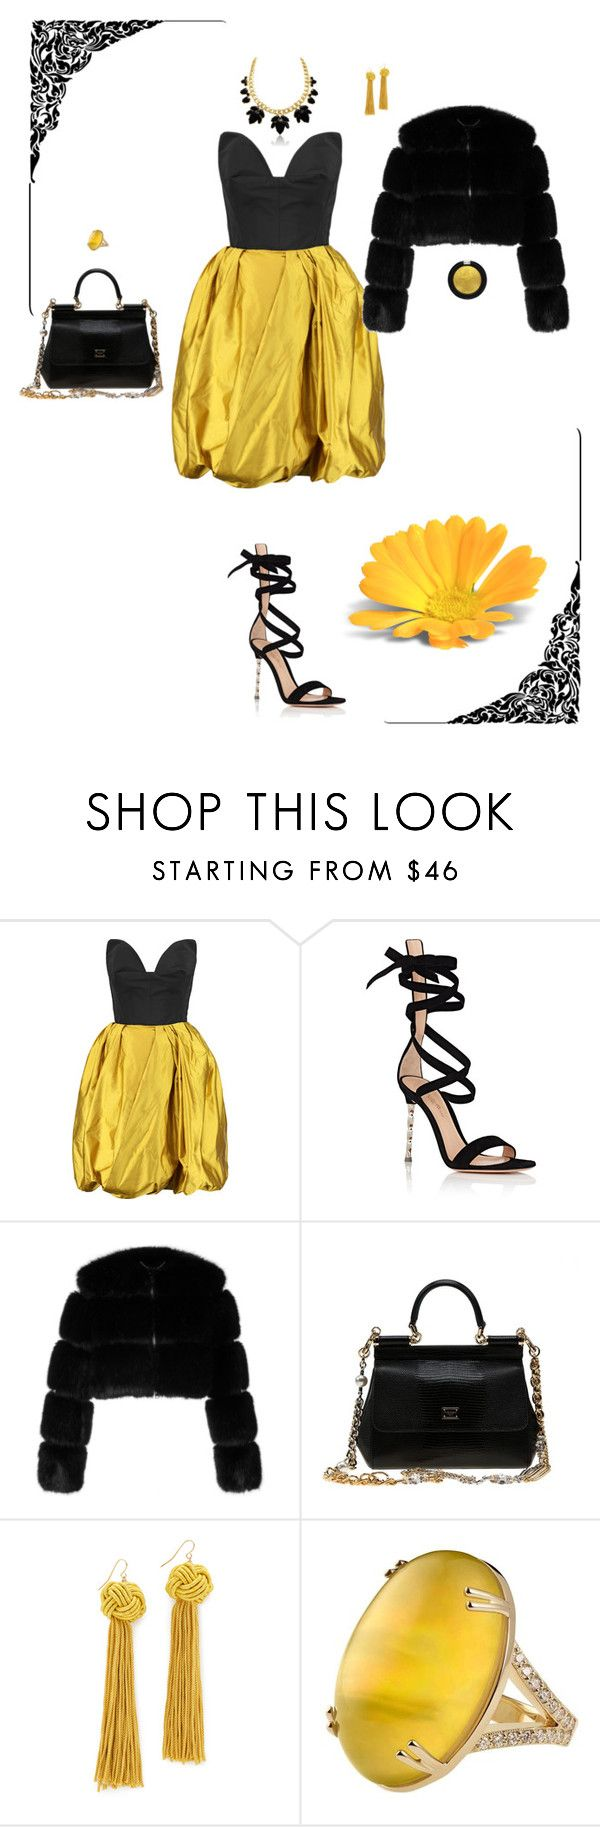 """Untitled #8725"" by erinlindsay83 ❤ liked on Polyvore featuring Oscar de la Renta, Gianvito Rossi, Givenchy, Dolce&Gabbana, Vanessa Mooney, Misahara and Pat McGrath"